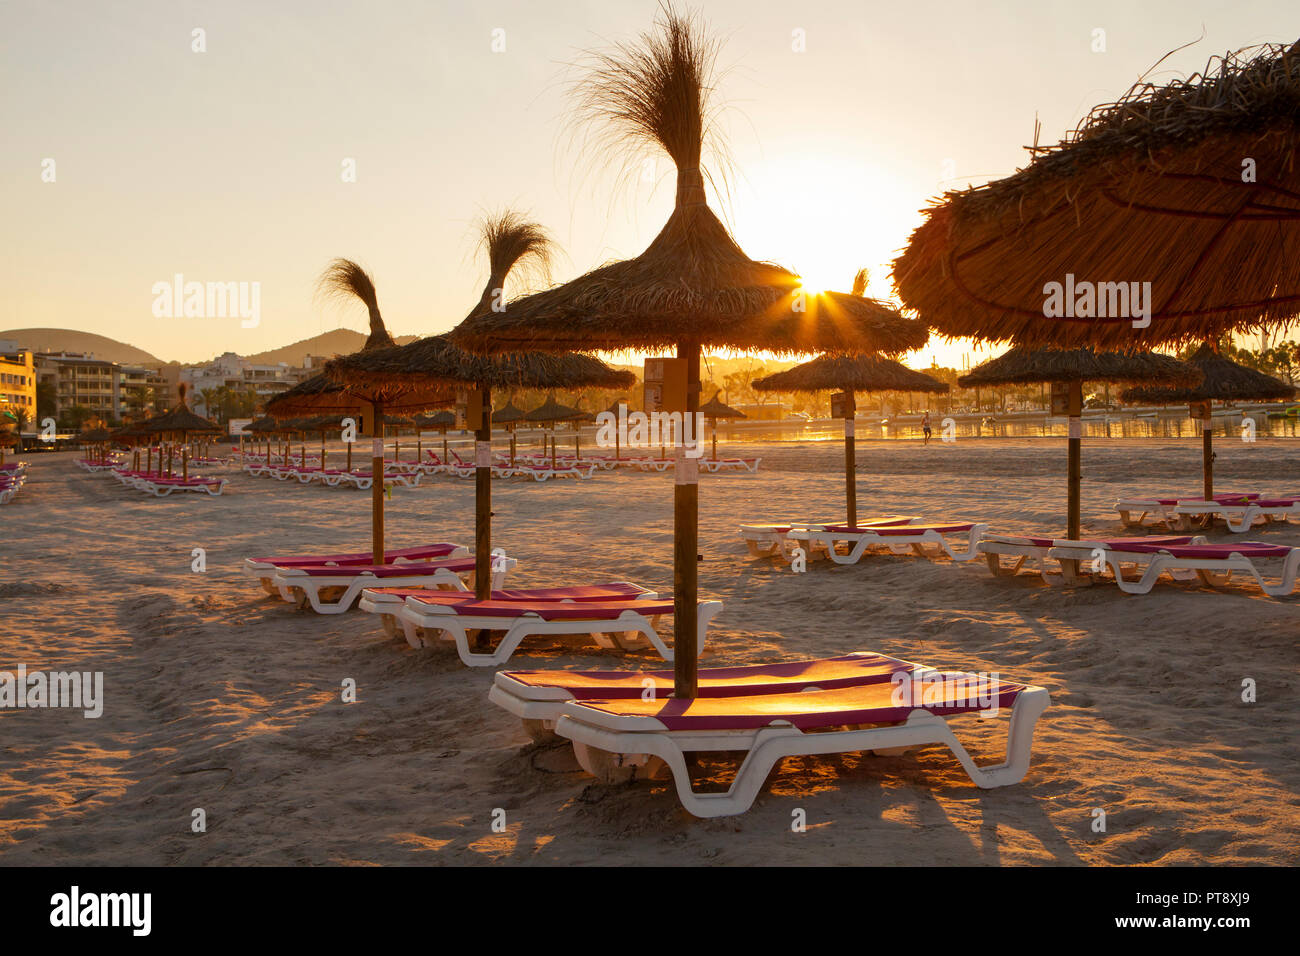 Empty chairs and straw umbrellas on the Alcudia beach in Majorca at sunrise Stock Photo